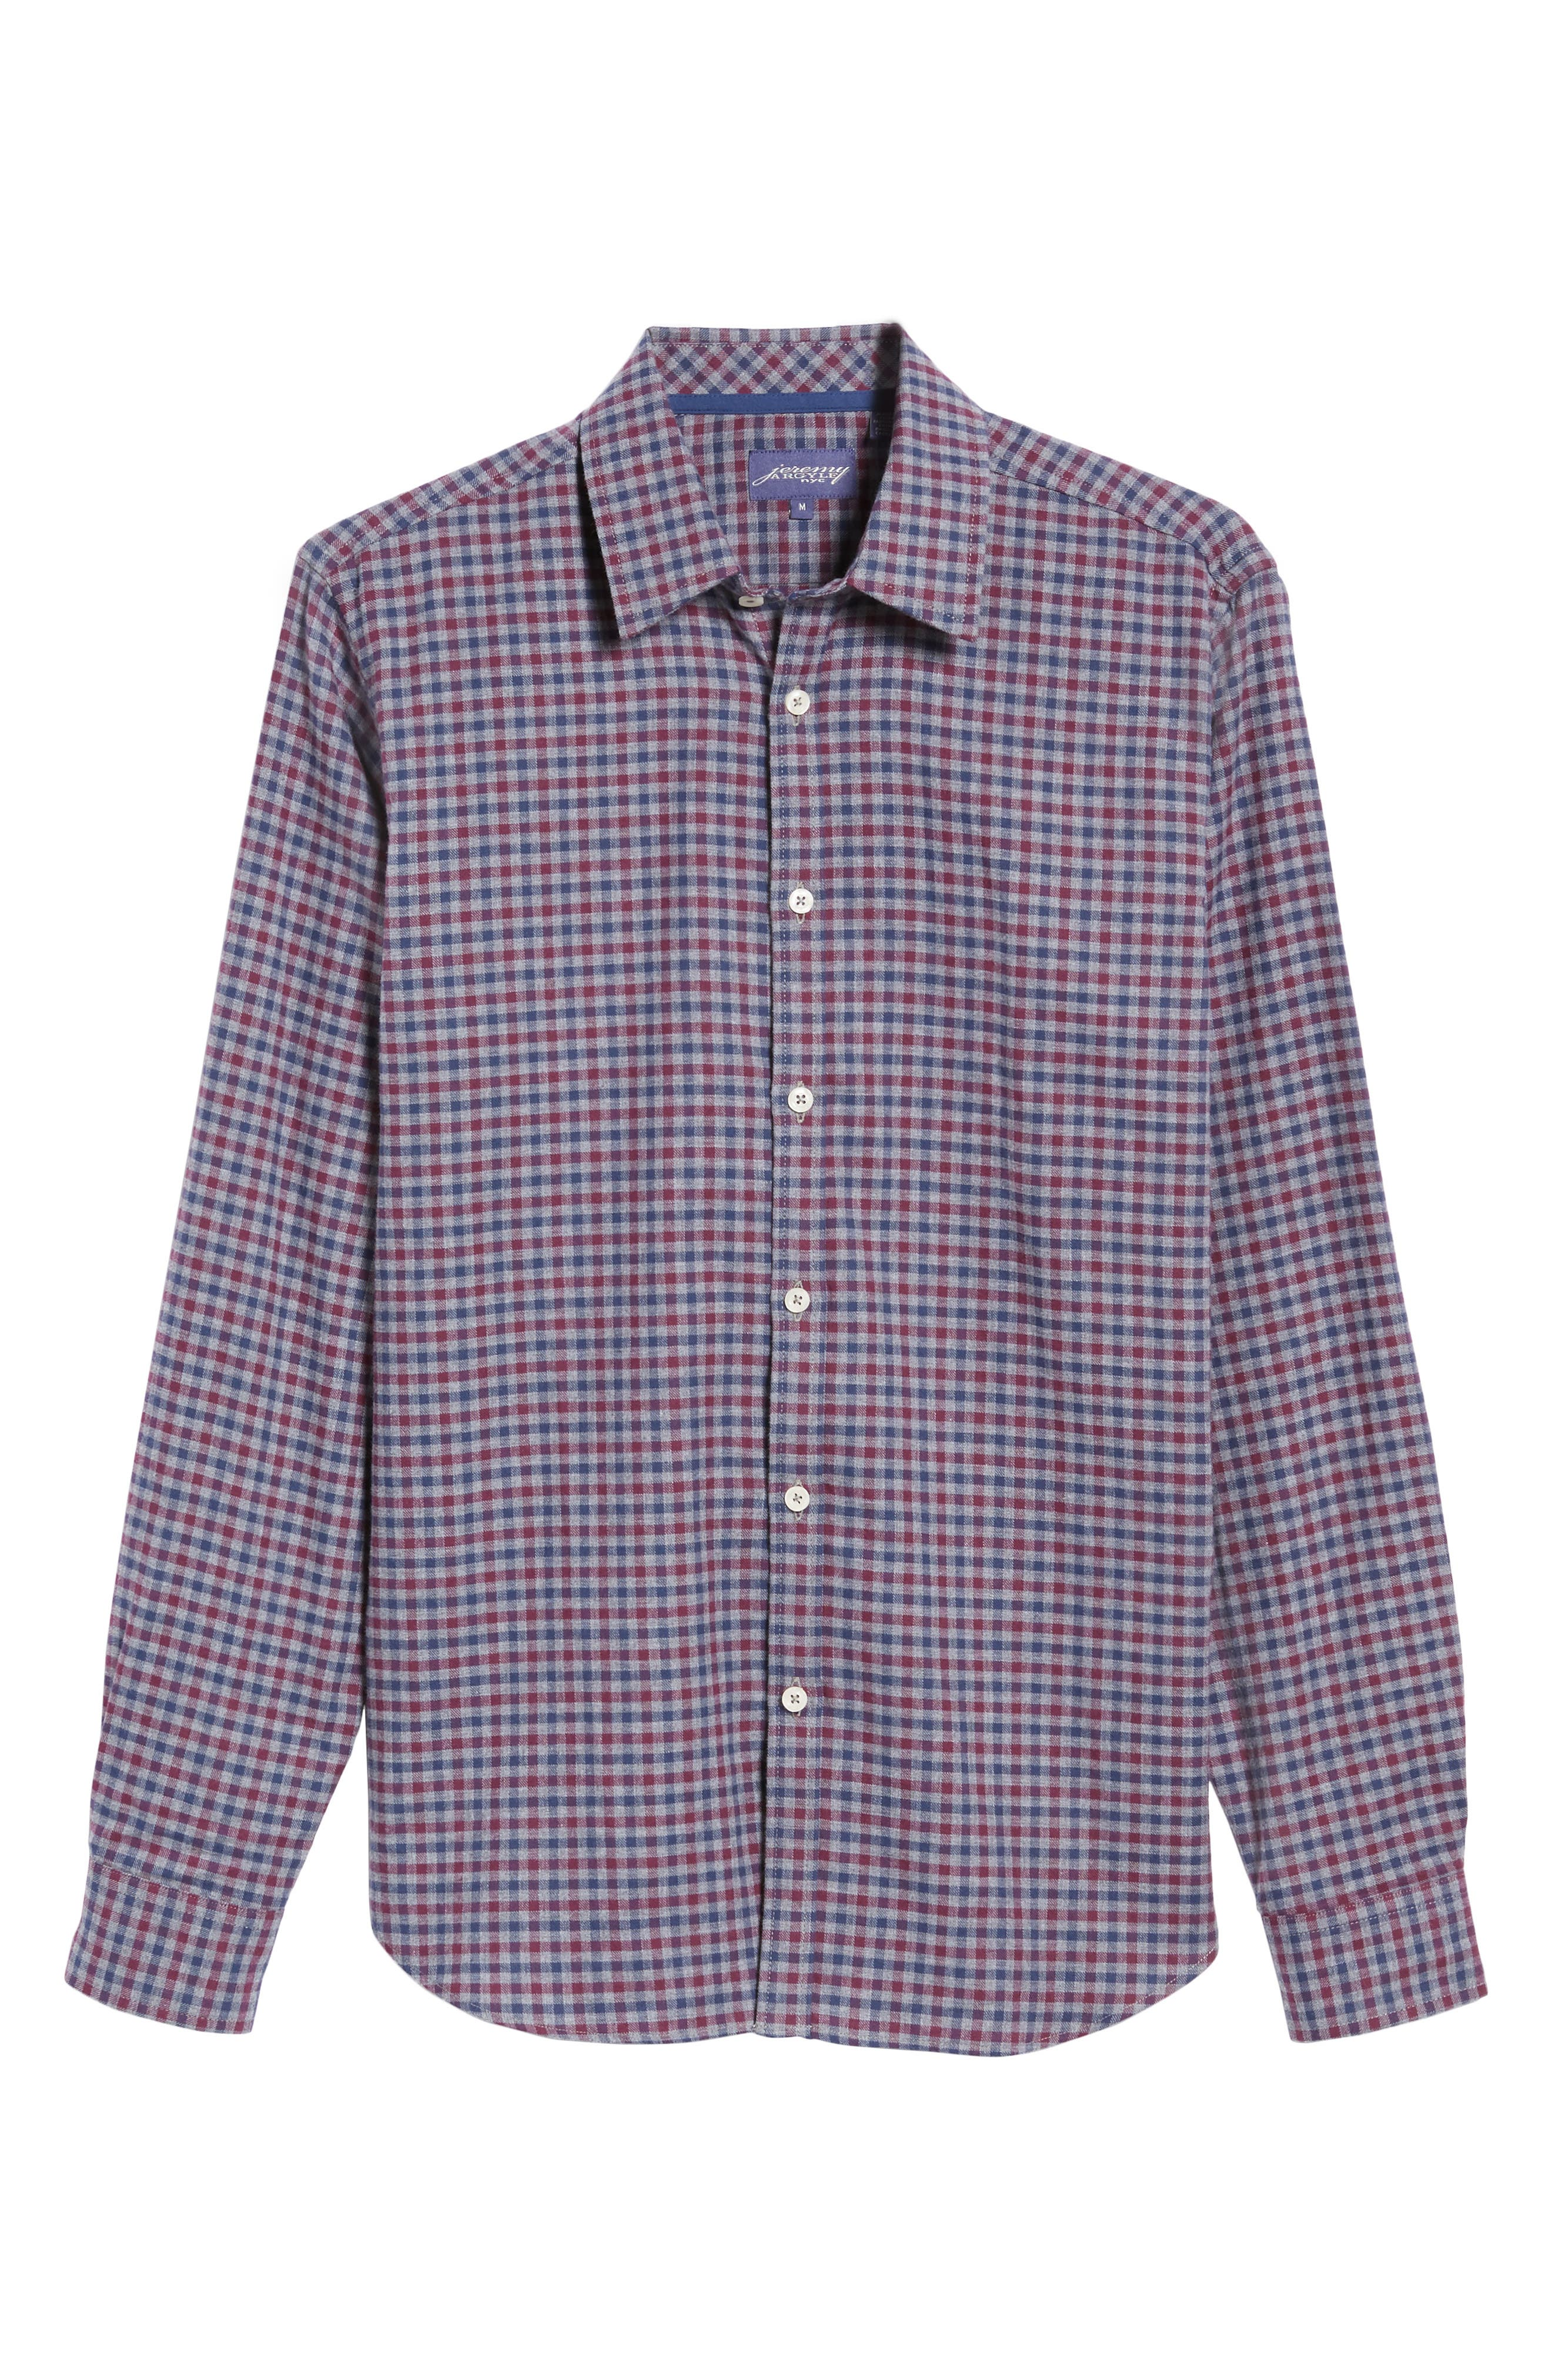 Slim Fit Check Sport Shirt,                             Alternate thumbnail 6, color,                             024